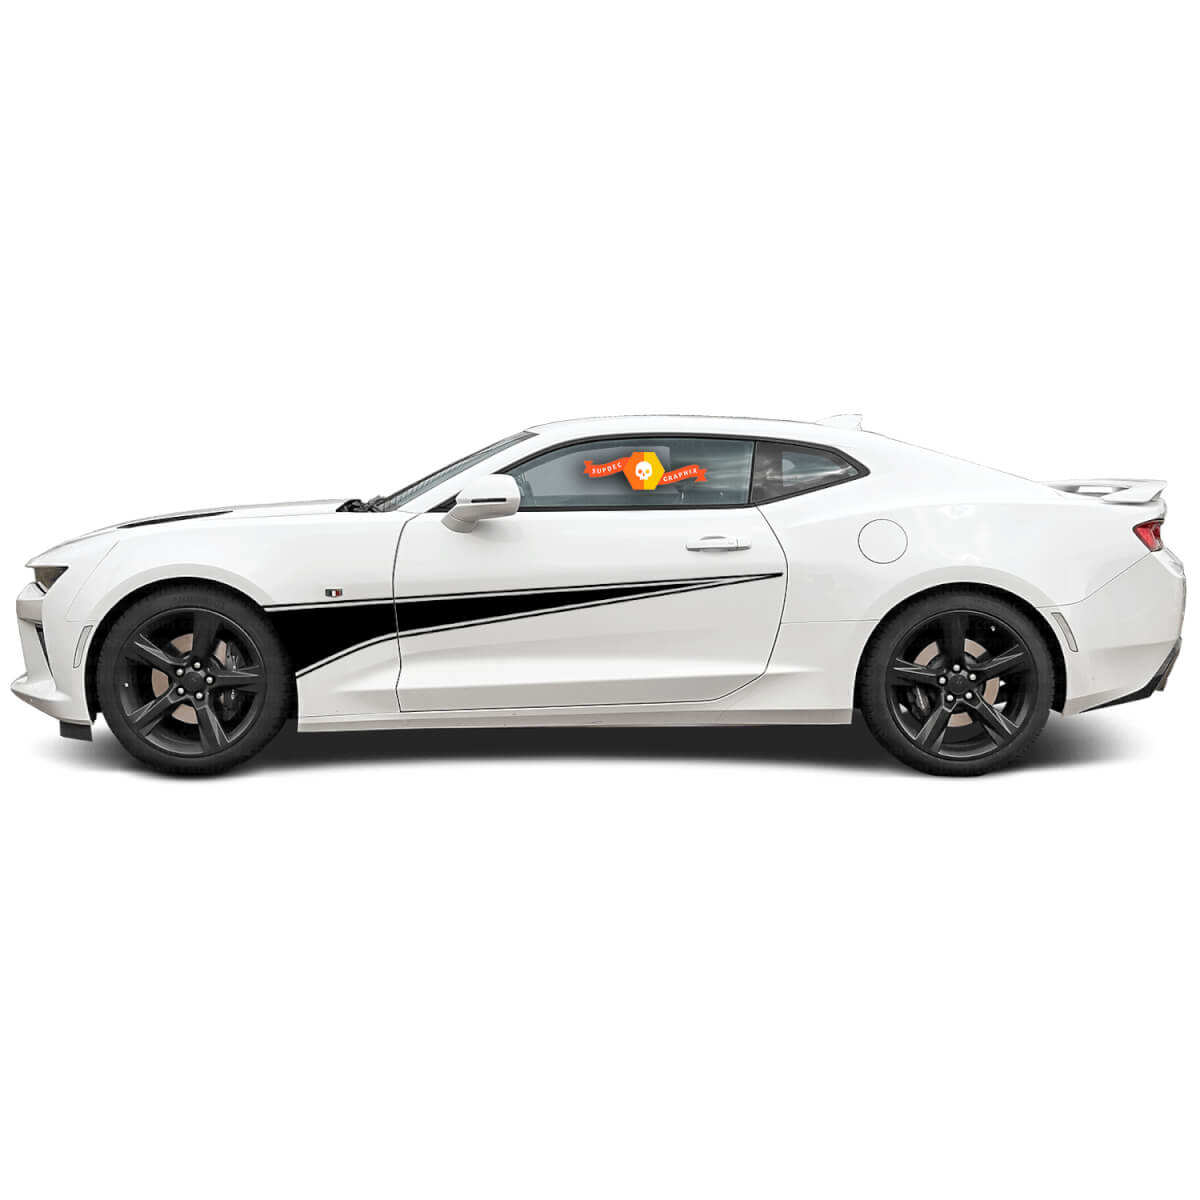 Chevrolet Camaro 2010-2020 Side Accent Stripes